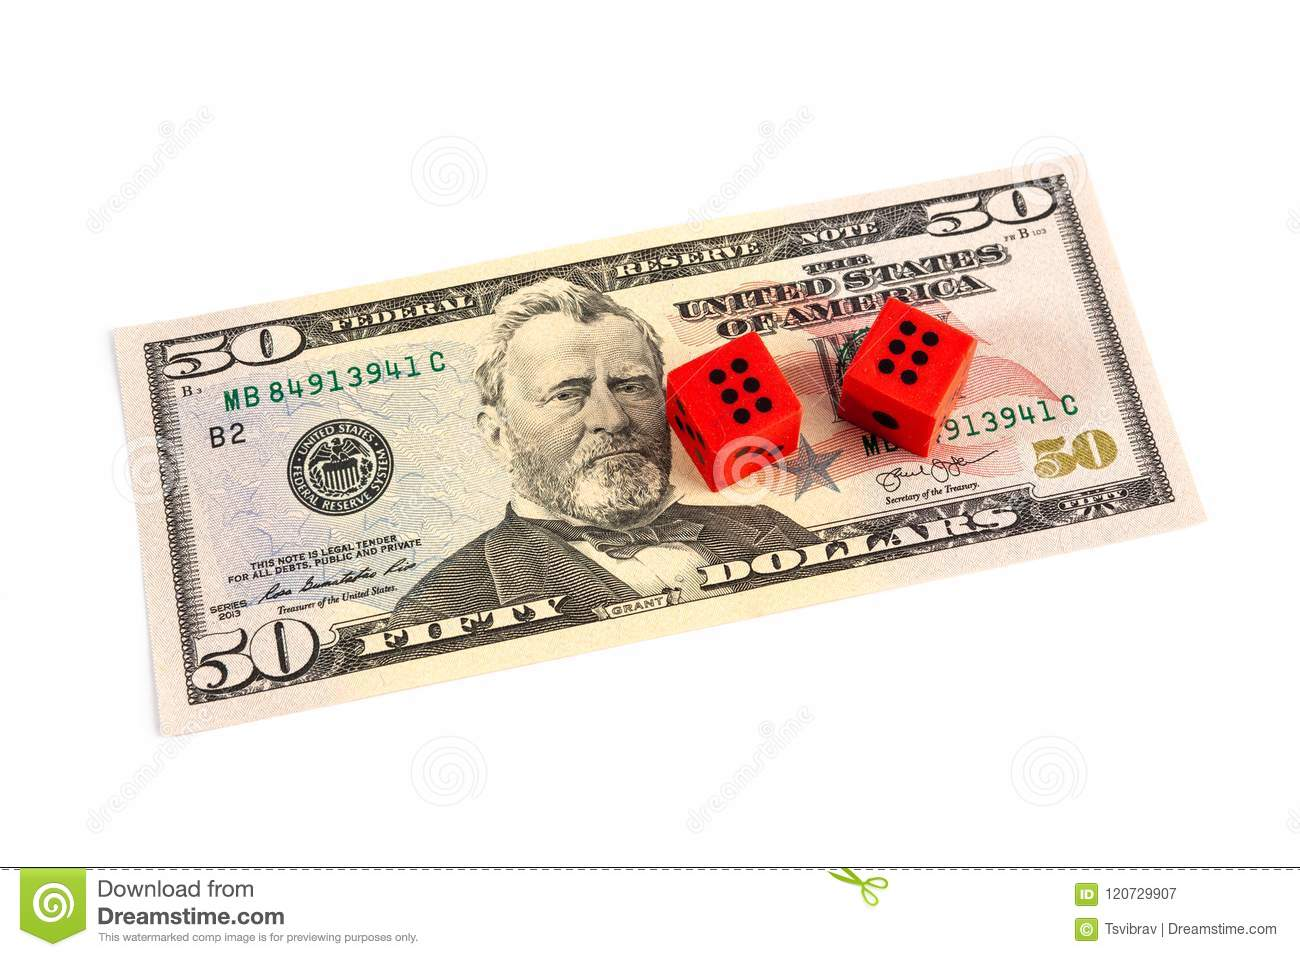 Red dice on 50 US dollar bill.